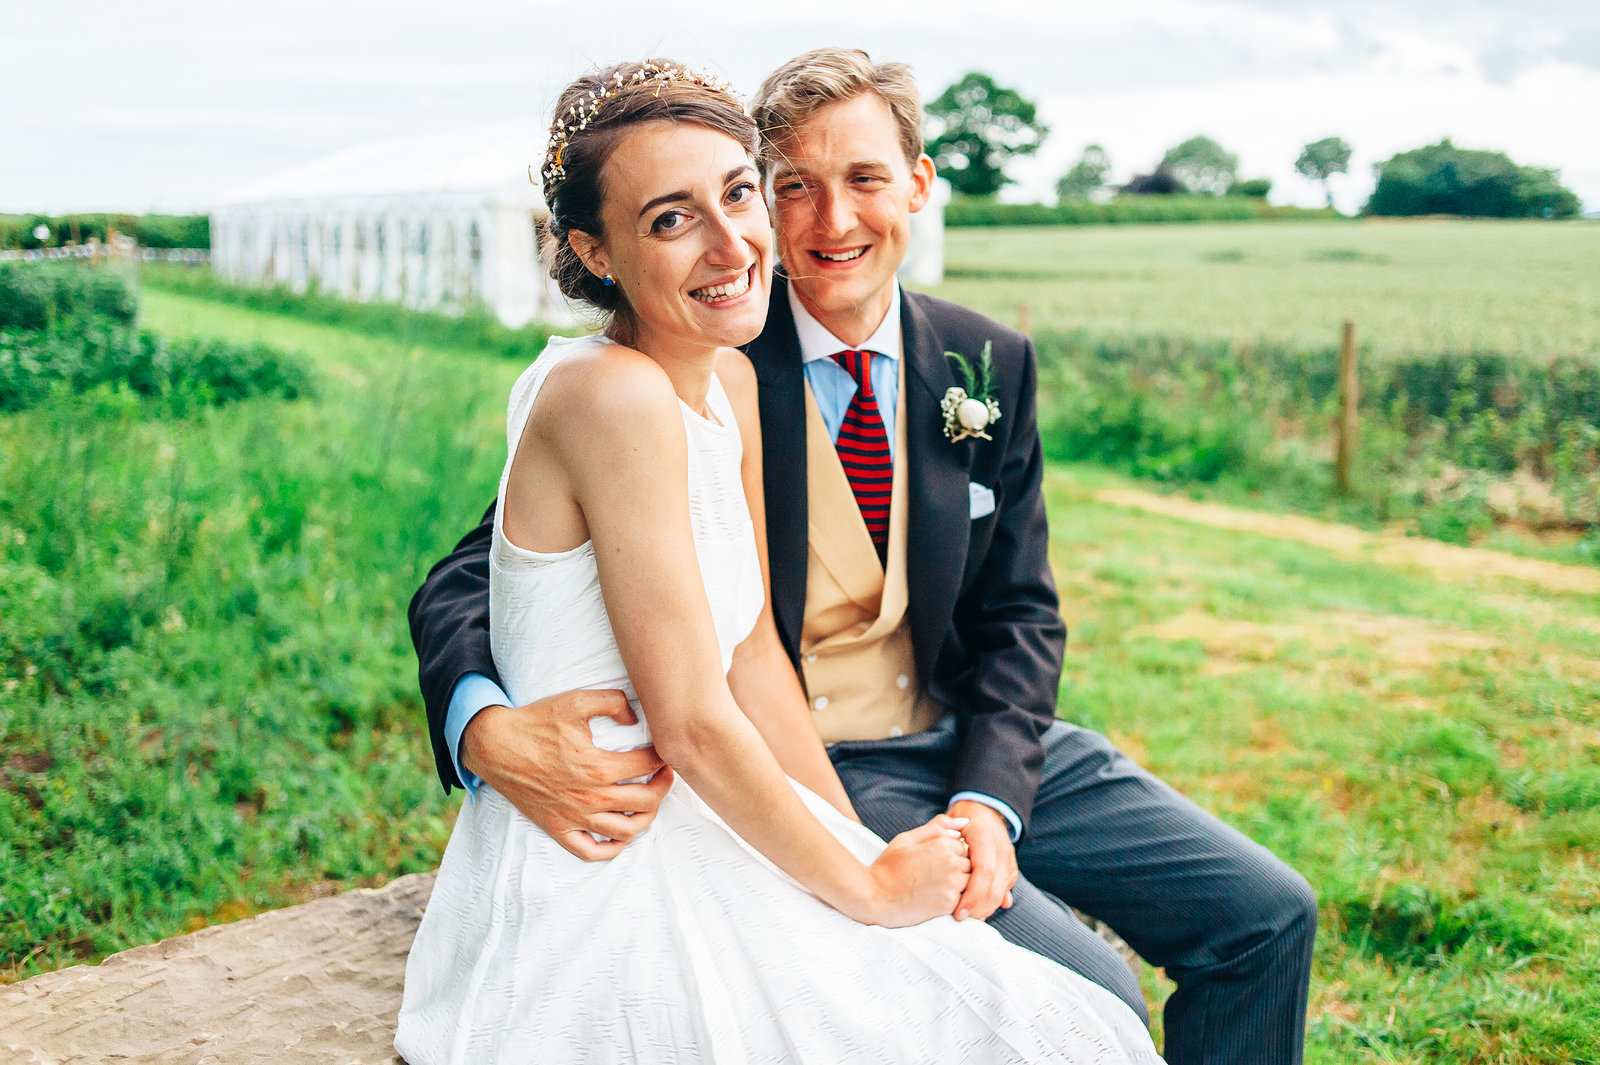 Alastair & Katherine's Wedding, July 2015